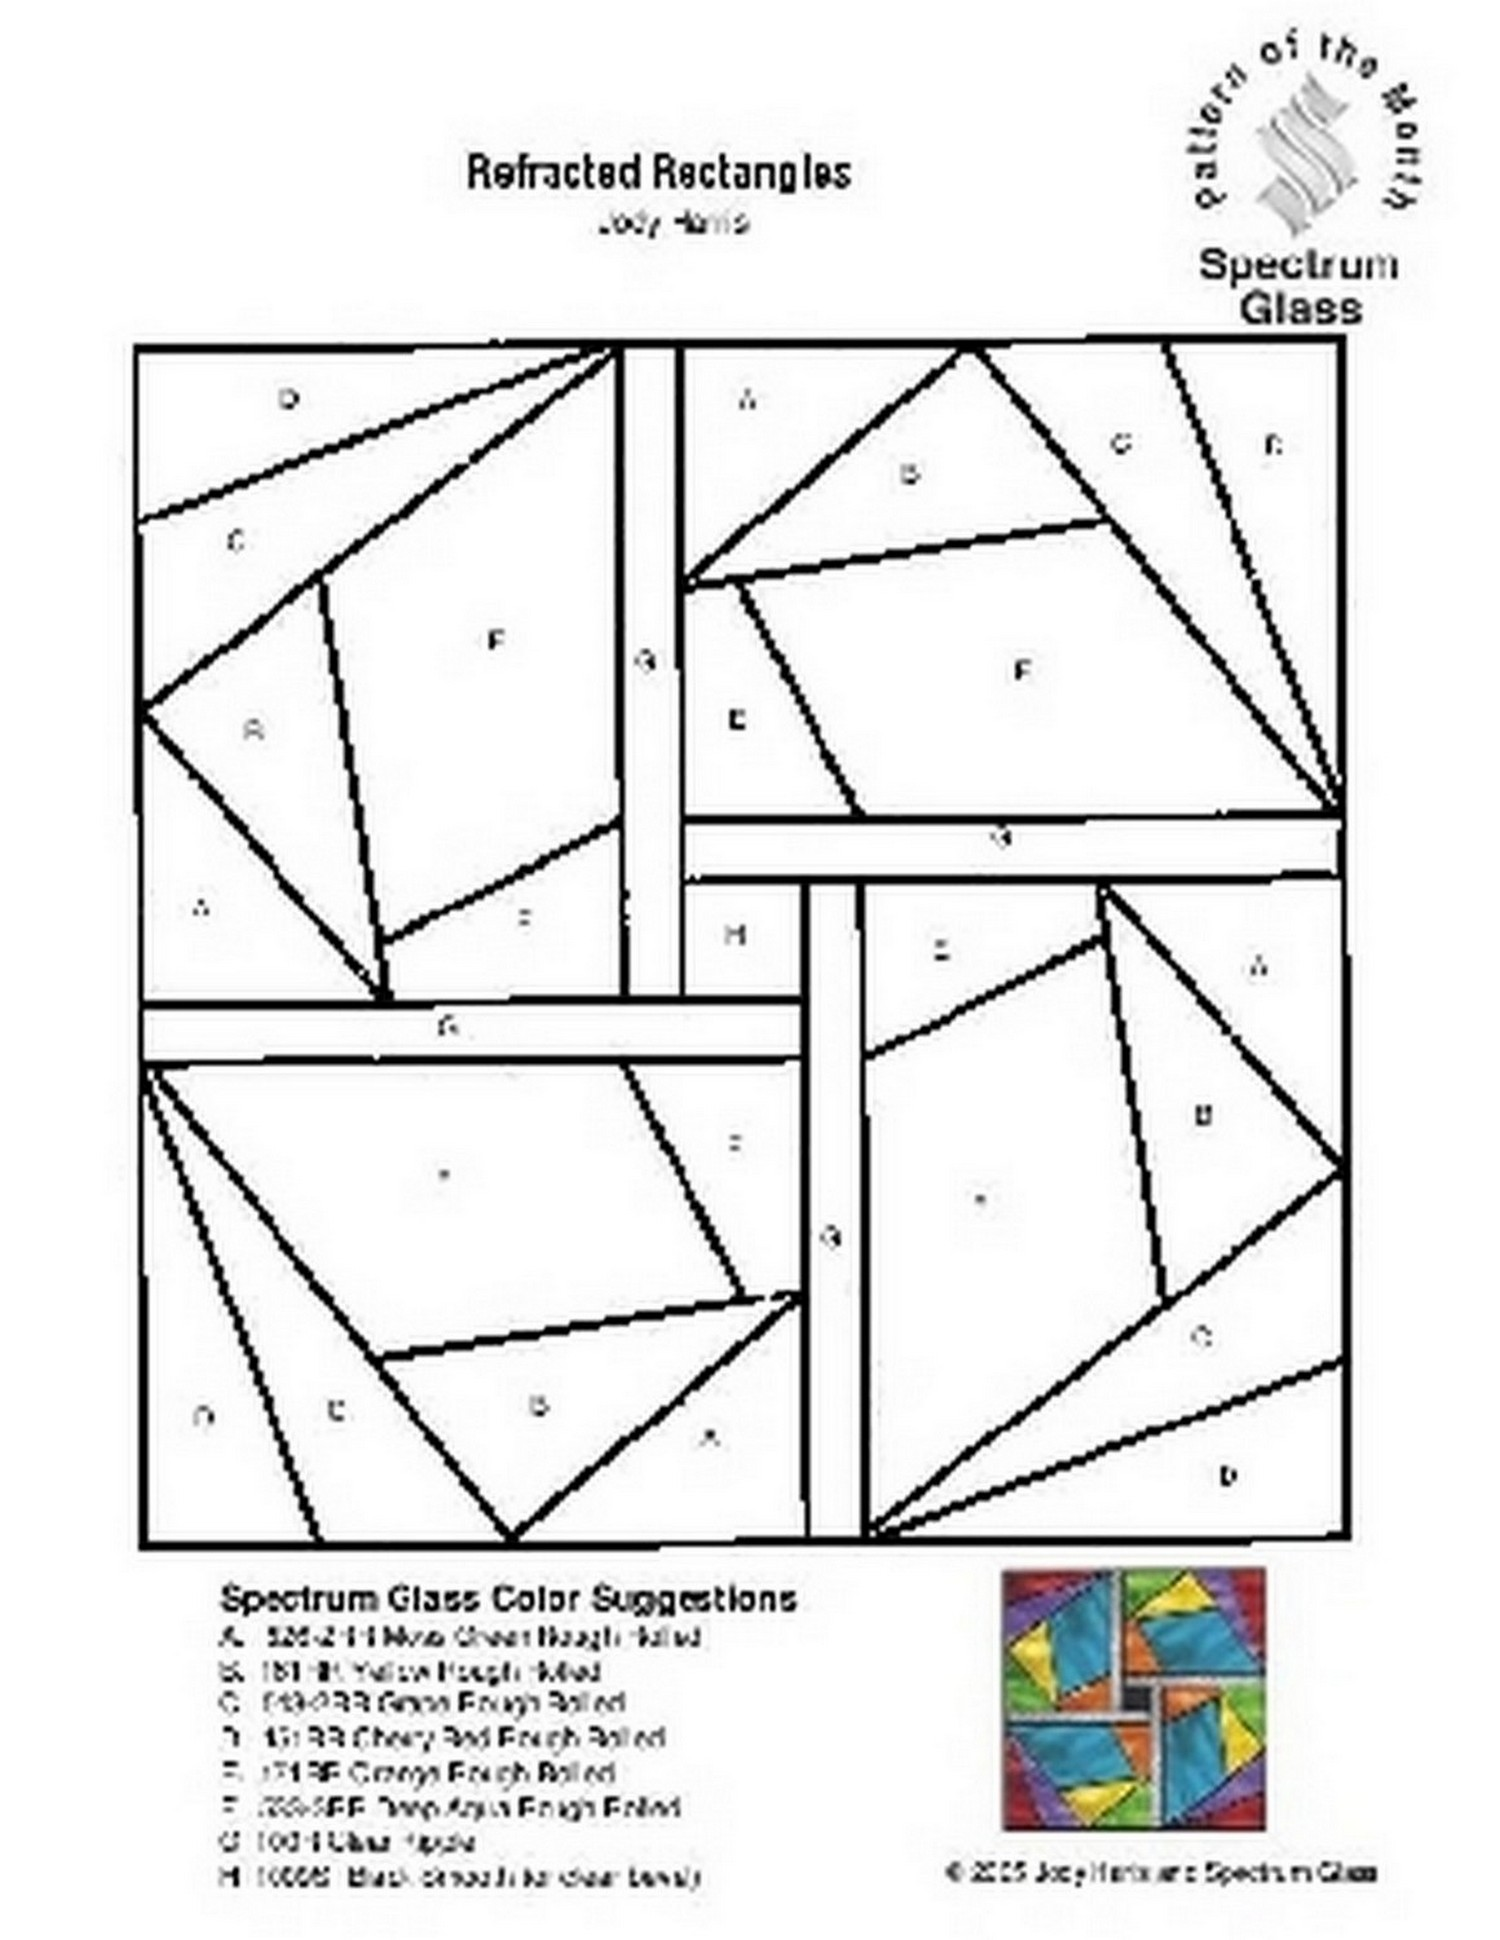 Free Stained Glass Pattern 2246-Refracted Rectangles